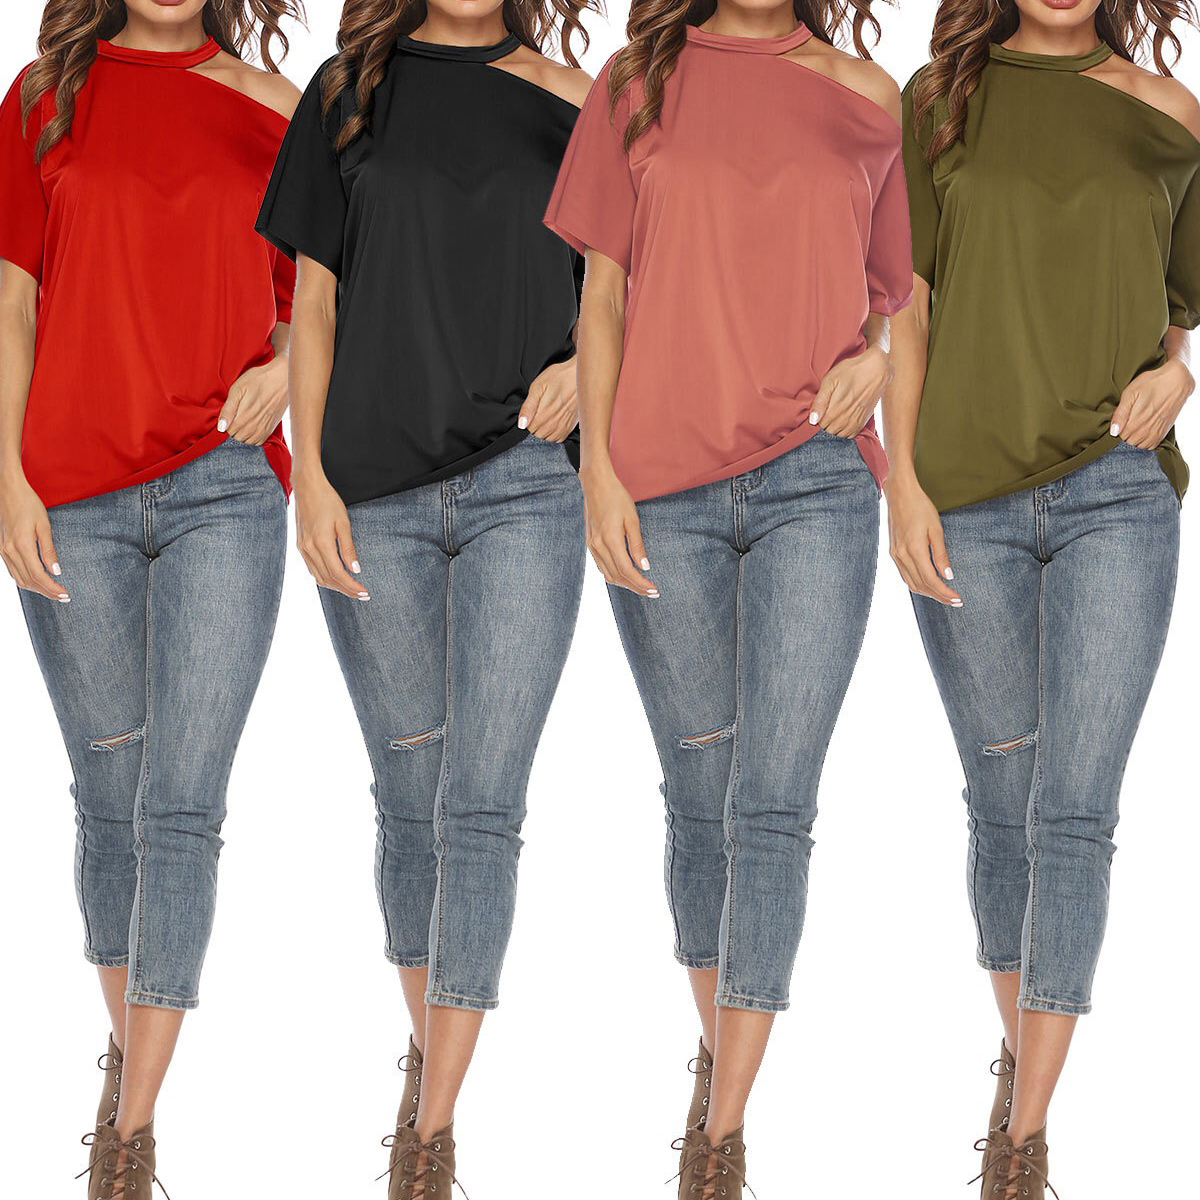 F5 Oversized Short Sleeve female clothes Basic Tshirt Cut Out T-Shirt Cold <strong>Shoulder</strong> O Neck Solid Loose Casual tunics female Tops